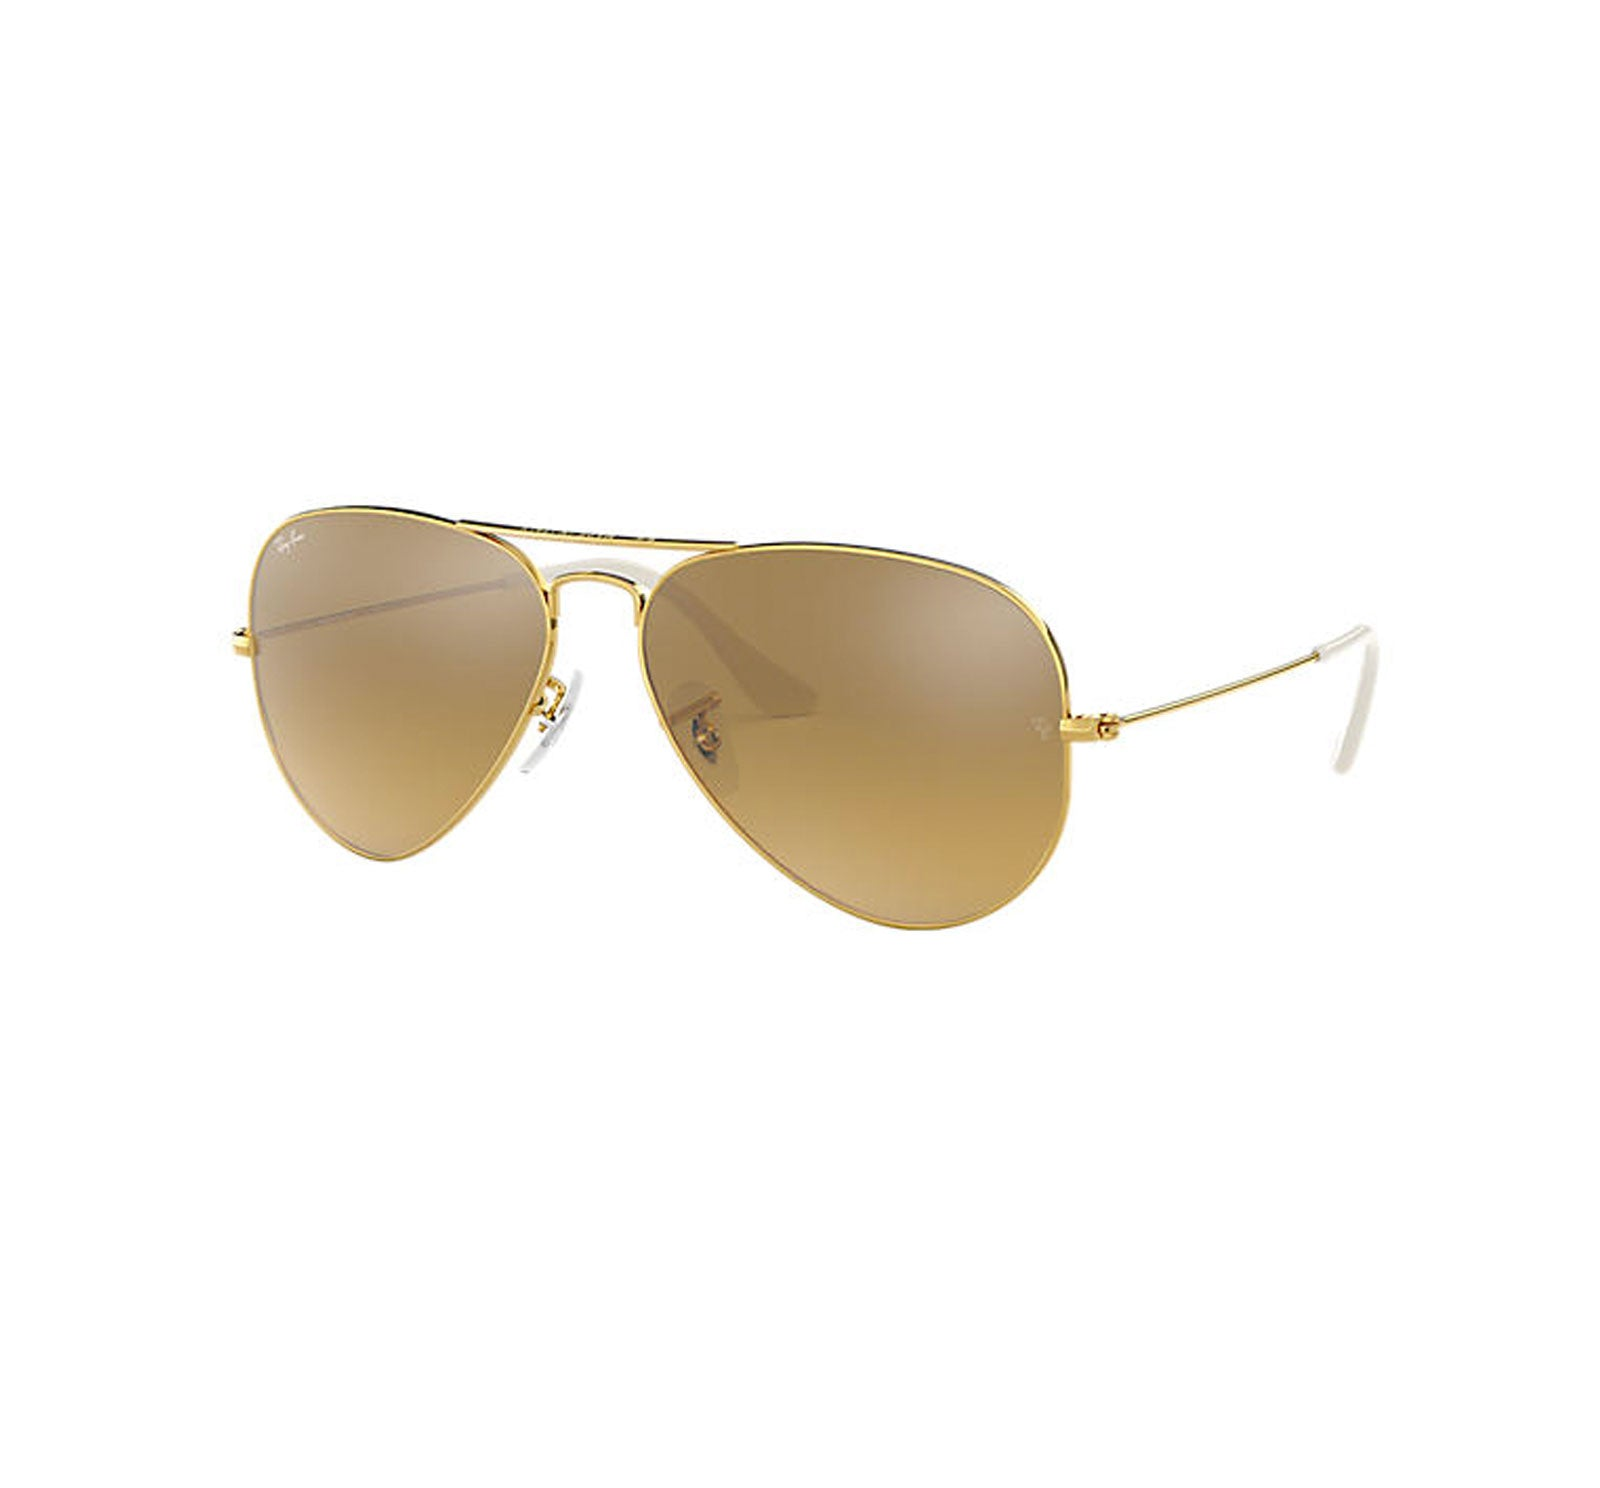 Ray-Ban Aviator Women's Sunglasses - Gold/Brown